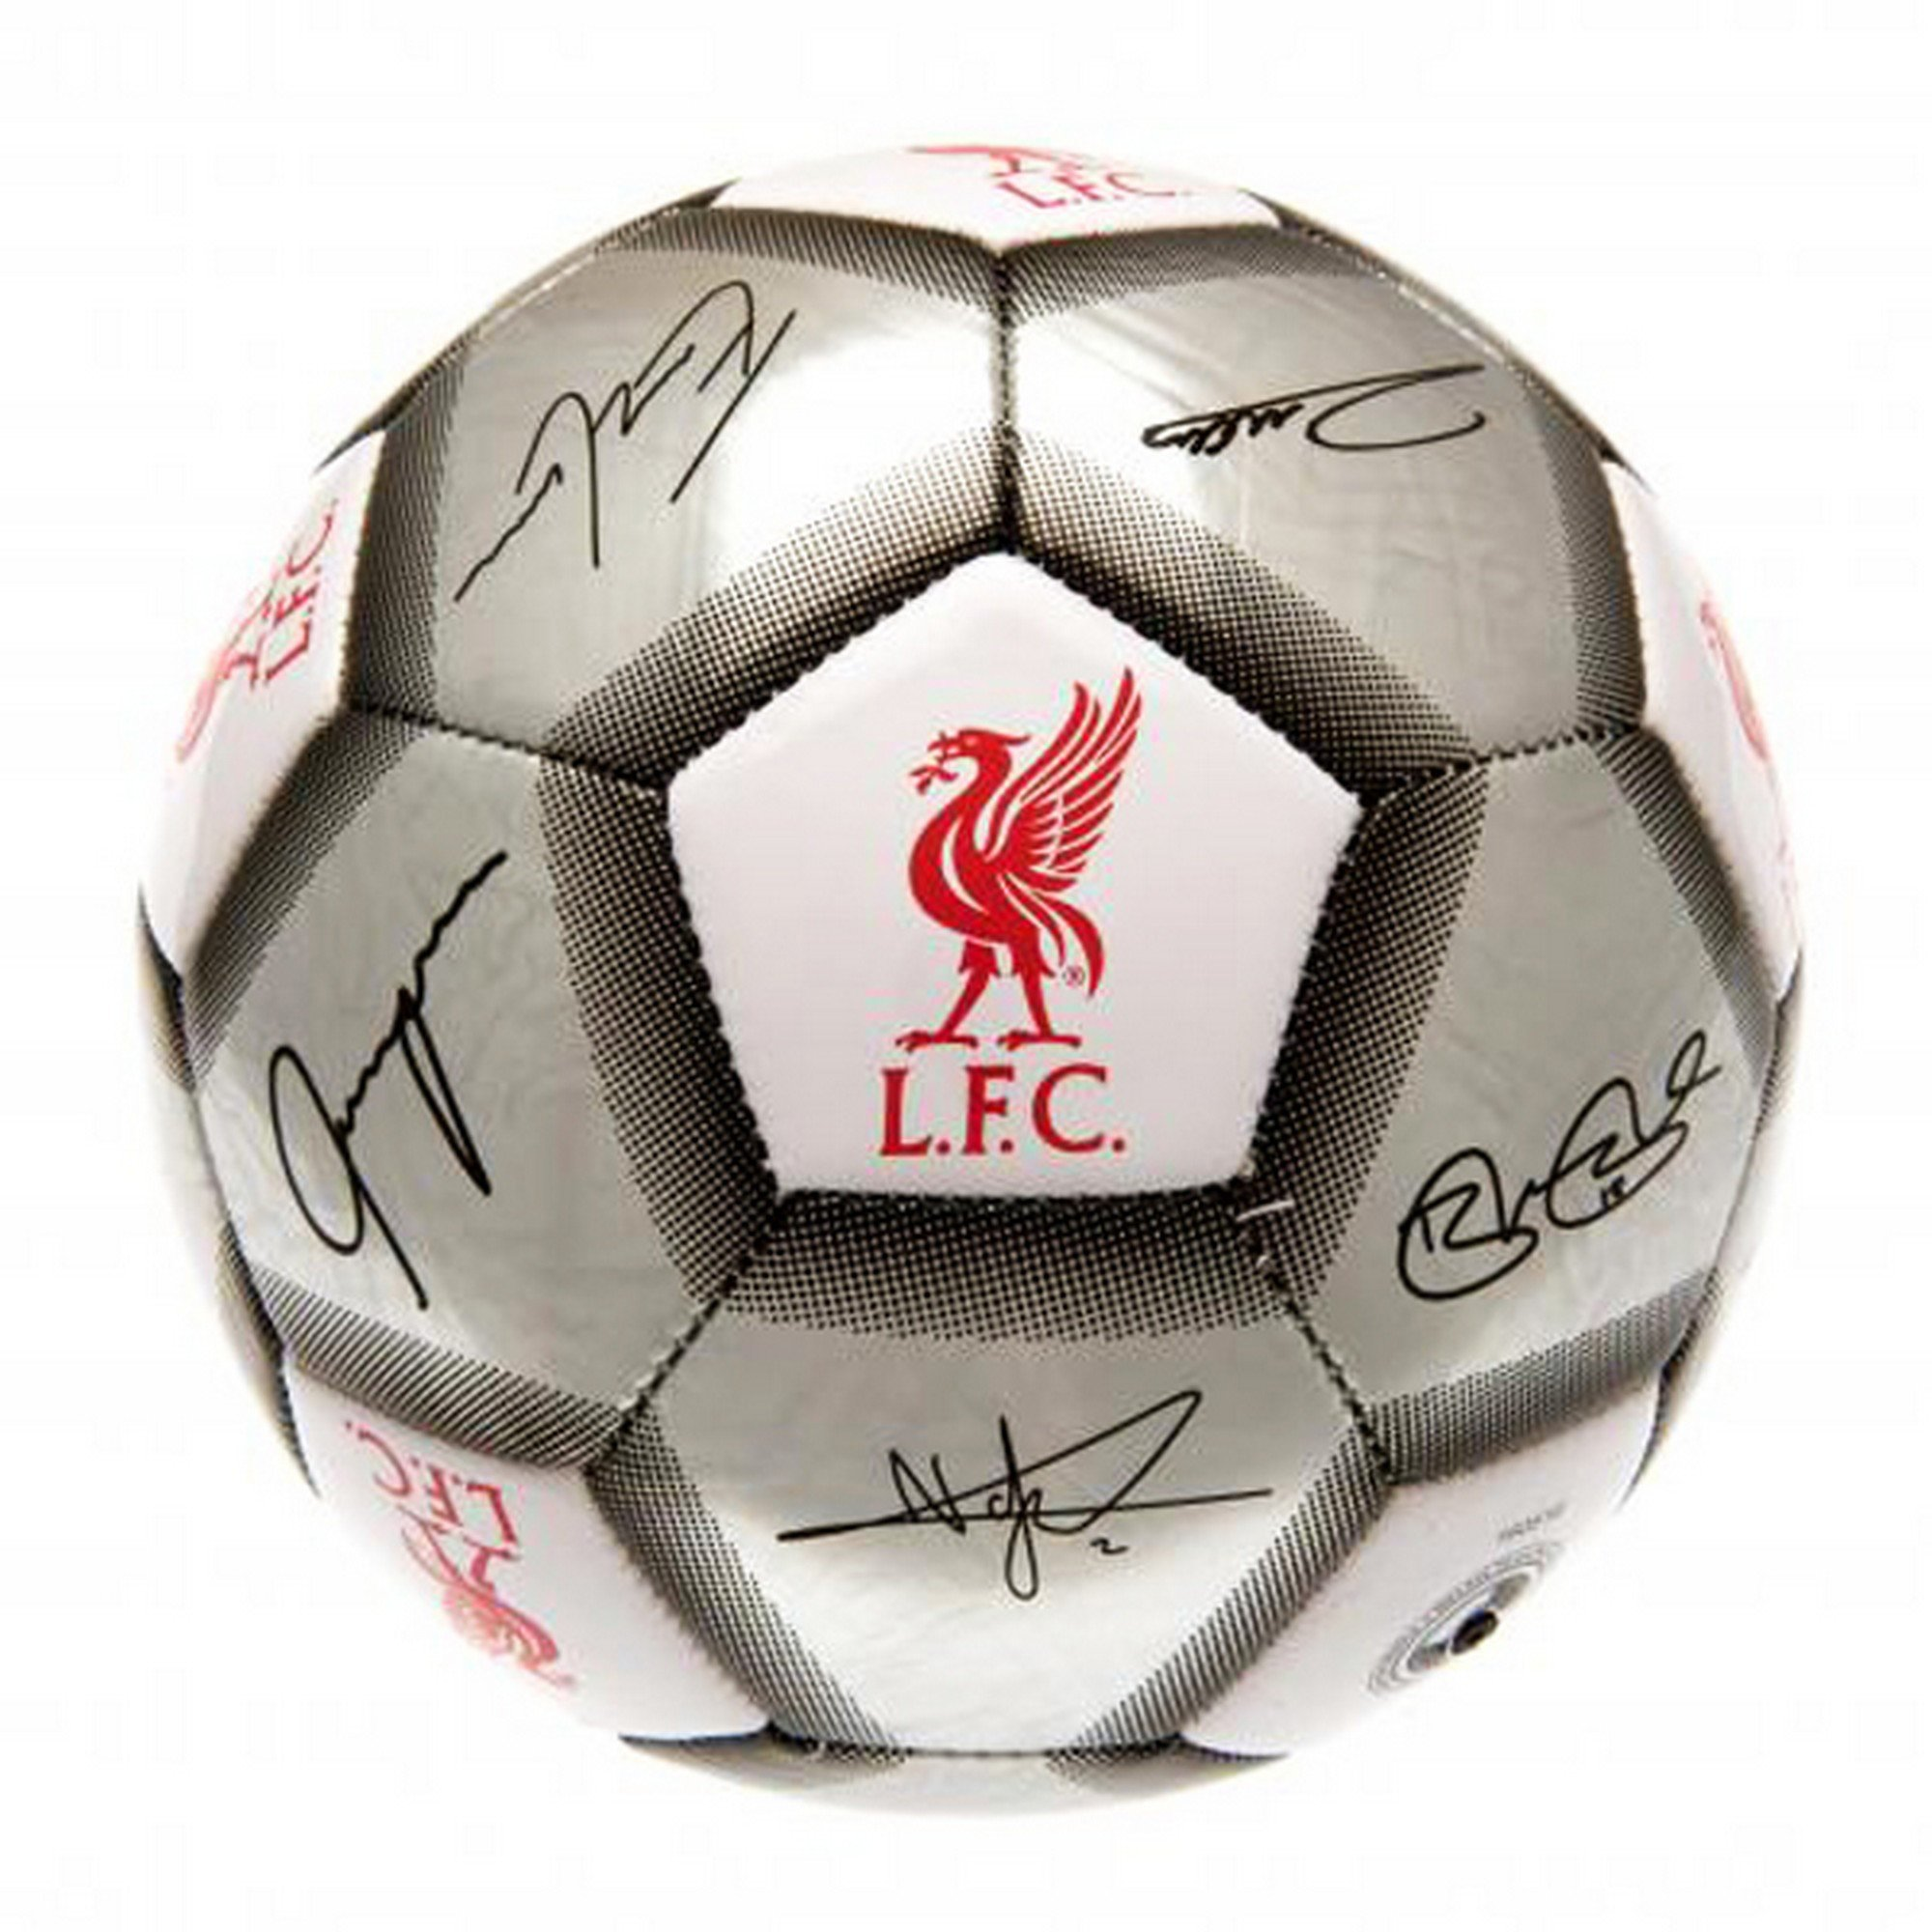 Liverpool FC Official Silver Signature Crest Football/Soccer Ball (Size 5)